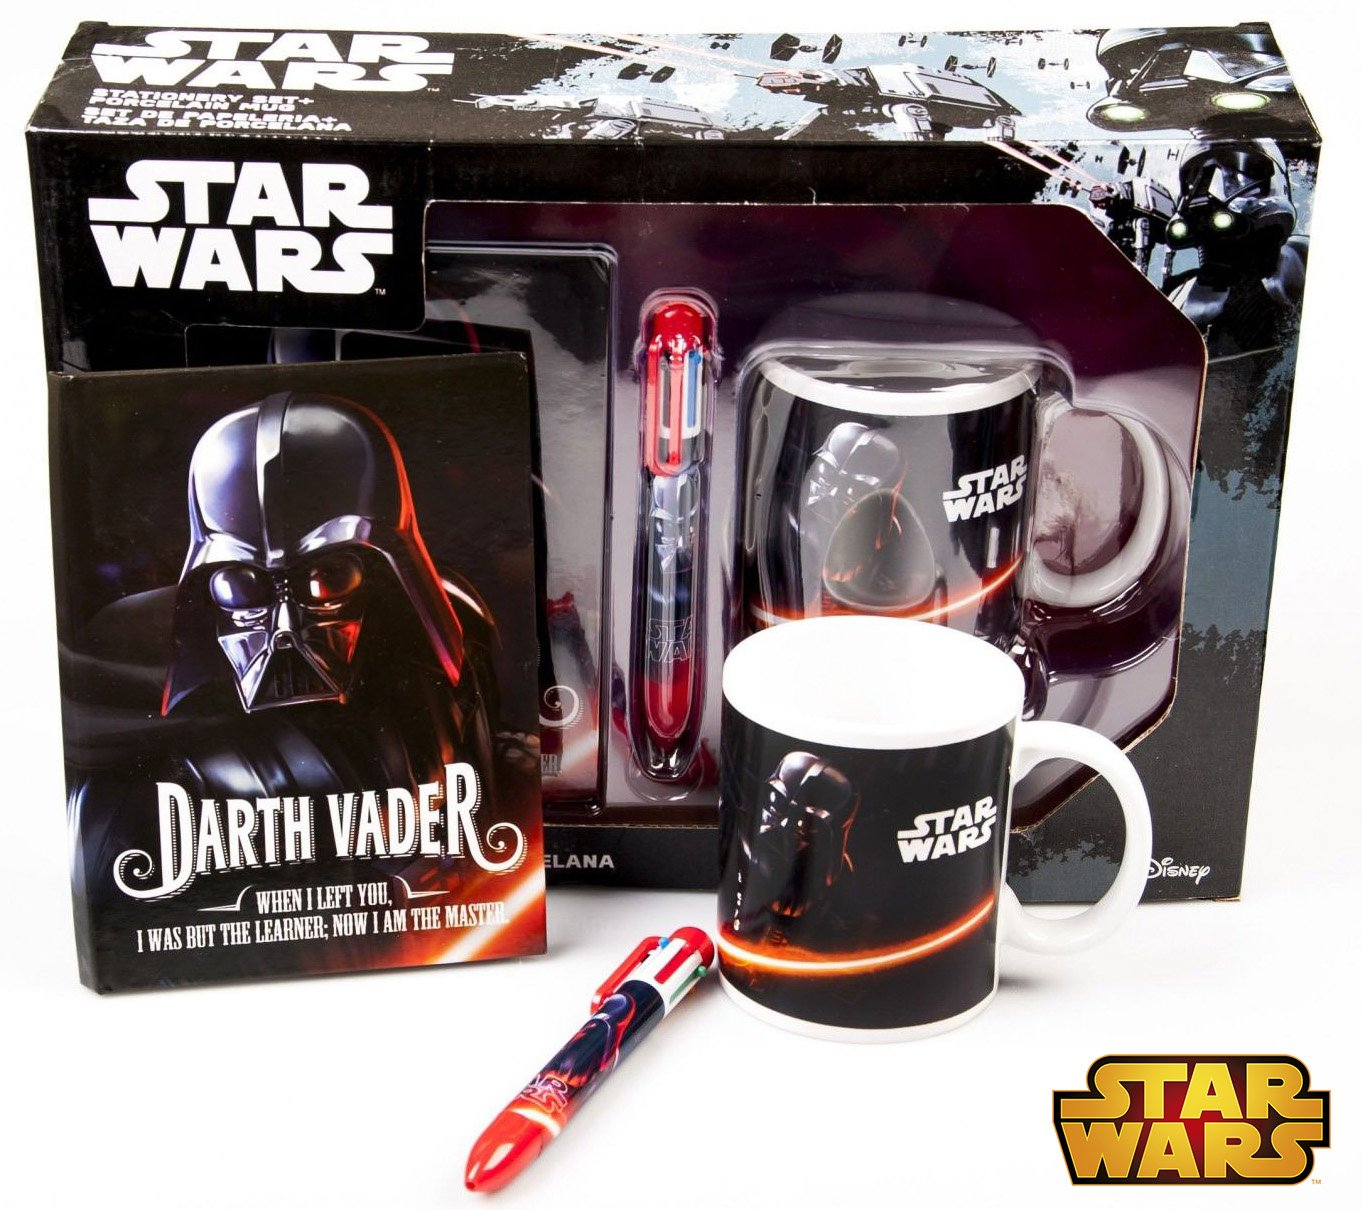 Kids Licensing Set Cadeau Star Wars-Un Journal Intime-Un Stylo 4 Couleurs-Un Mug, SW92305 Kids Euroswan